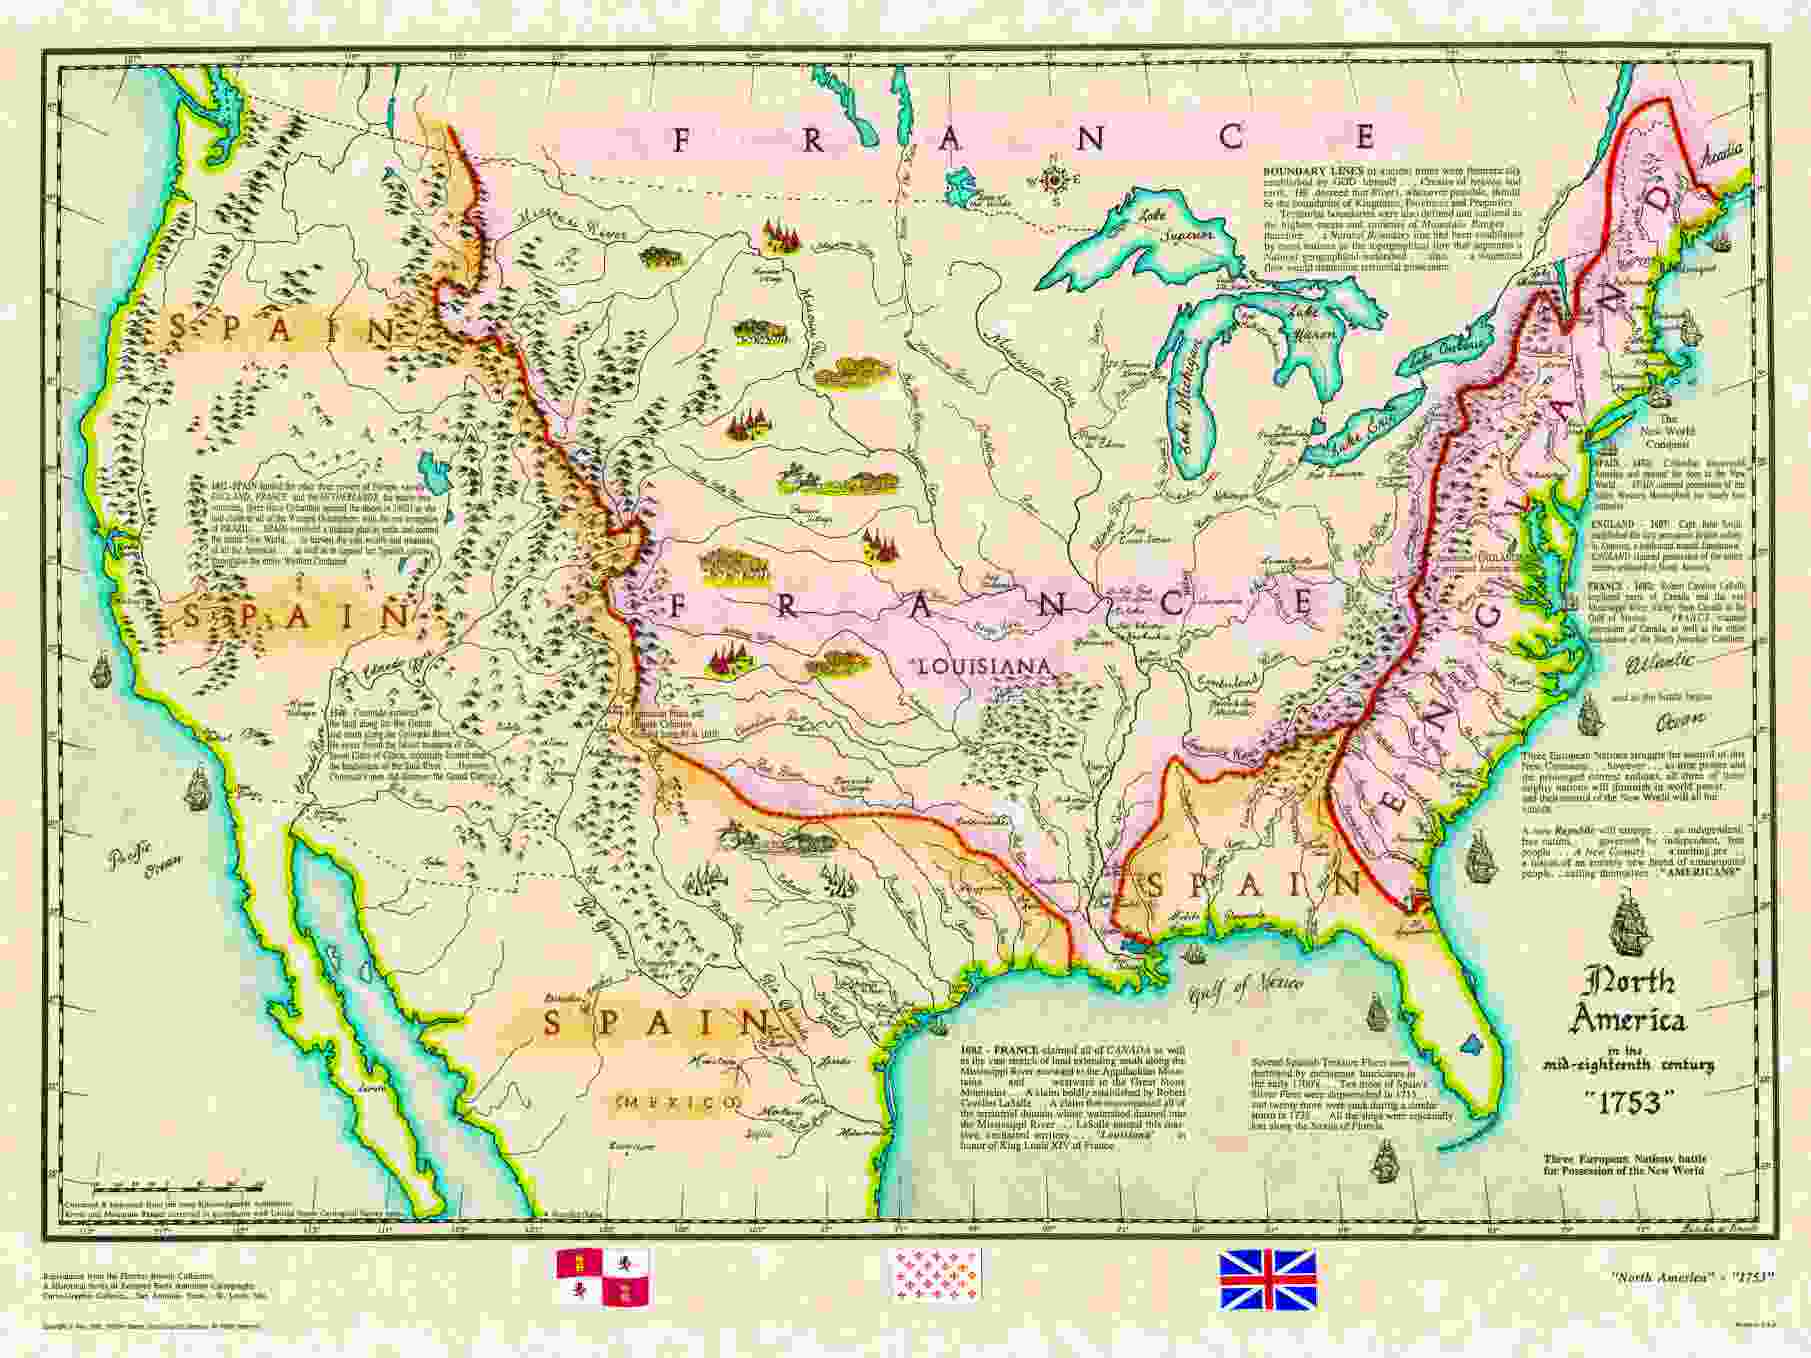 Map Mountains In Usa Image Gallery Mountain Range America Rangers - Map of mountains in us